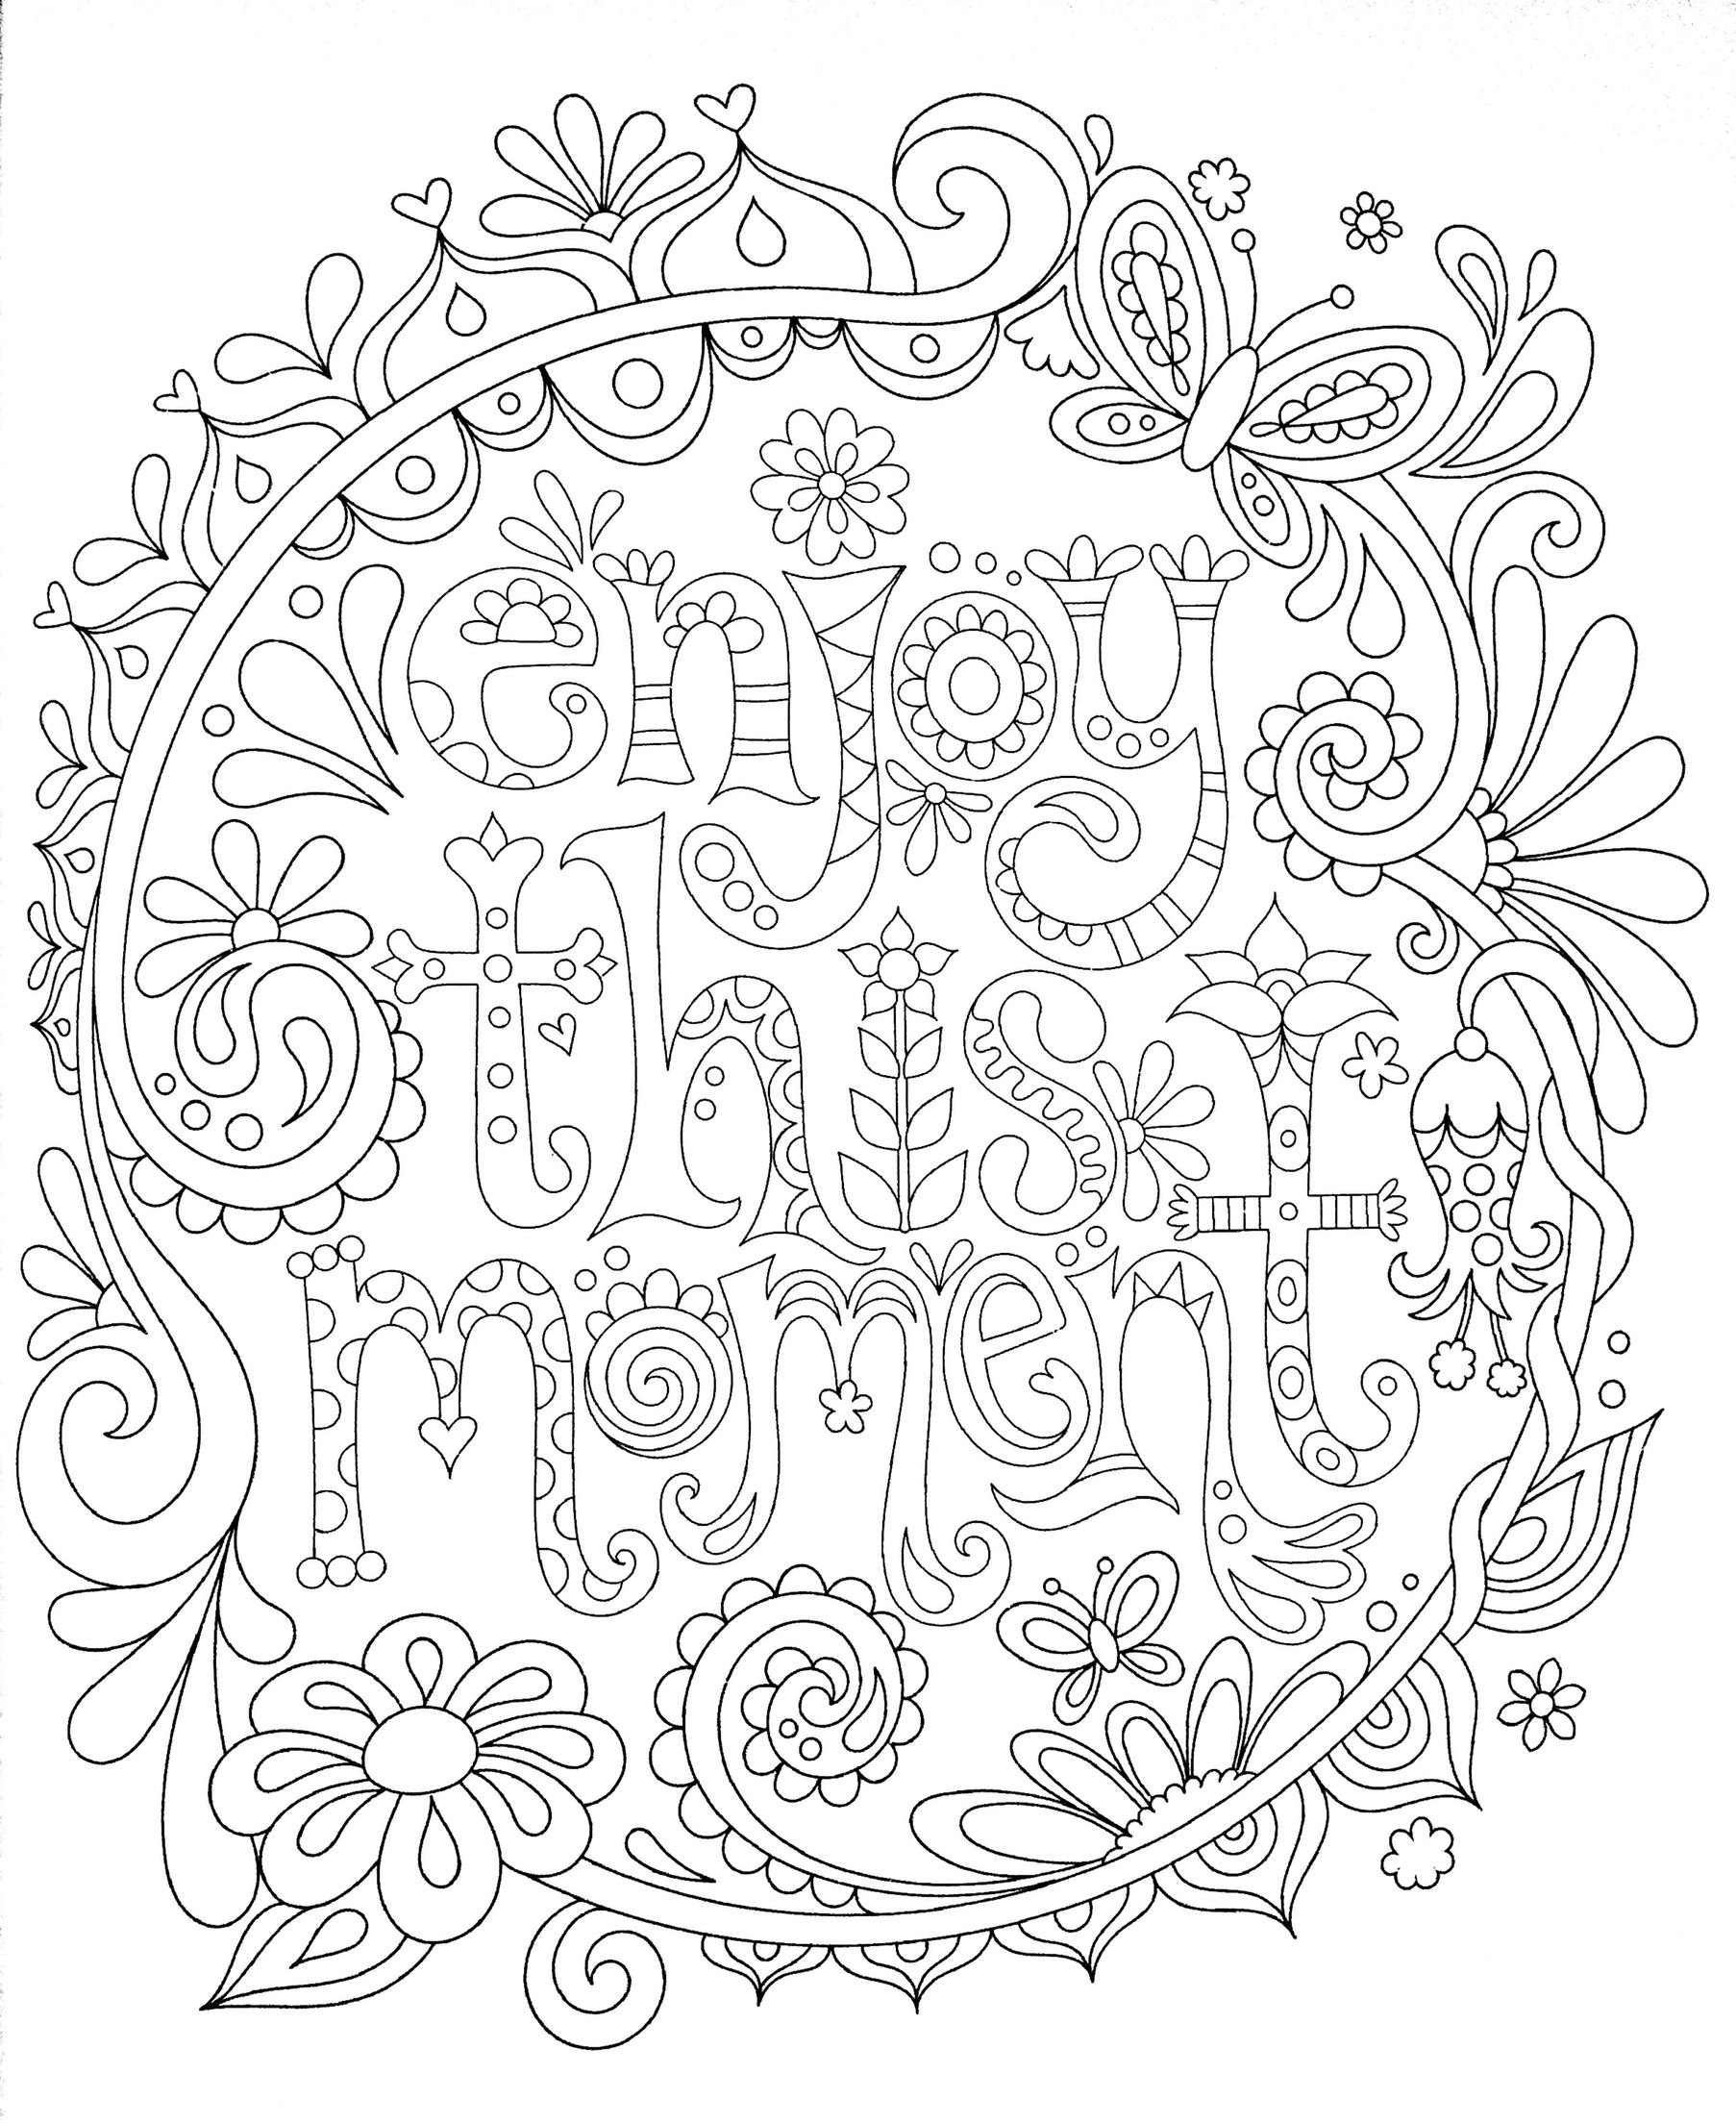 coloring techniques for adults 9 best images of free printable 8 x 11 adult coloring coloring techniques for adults